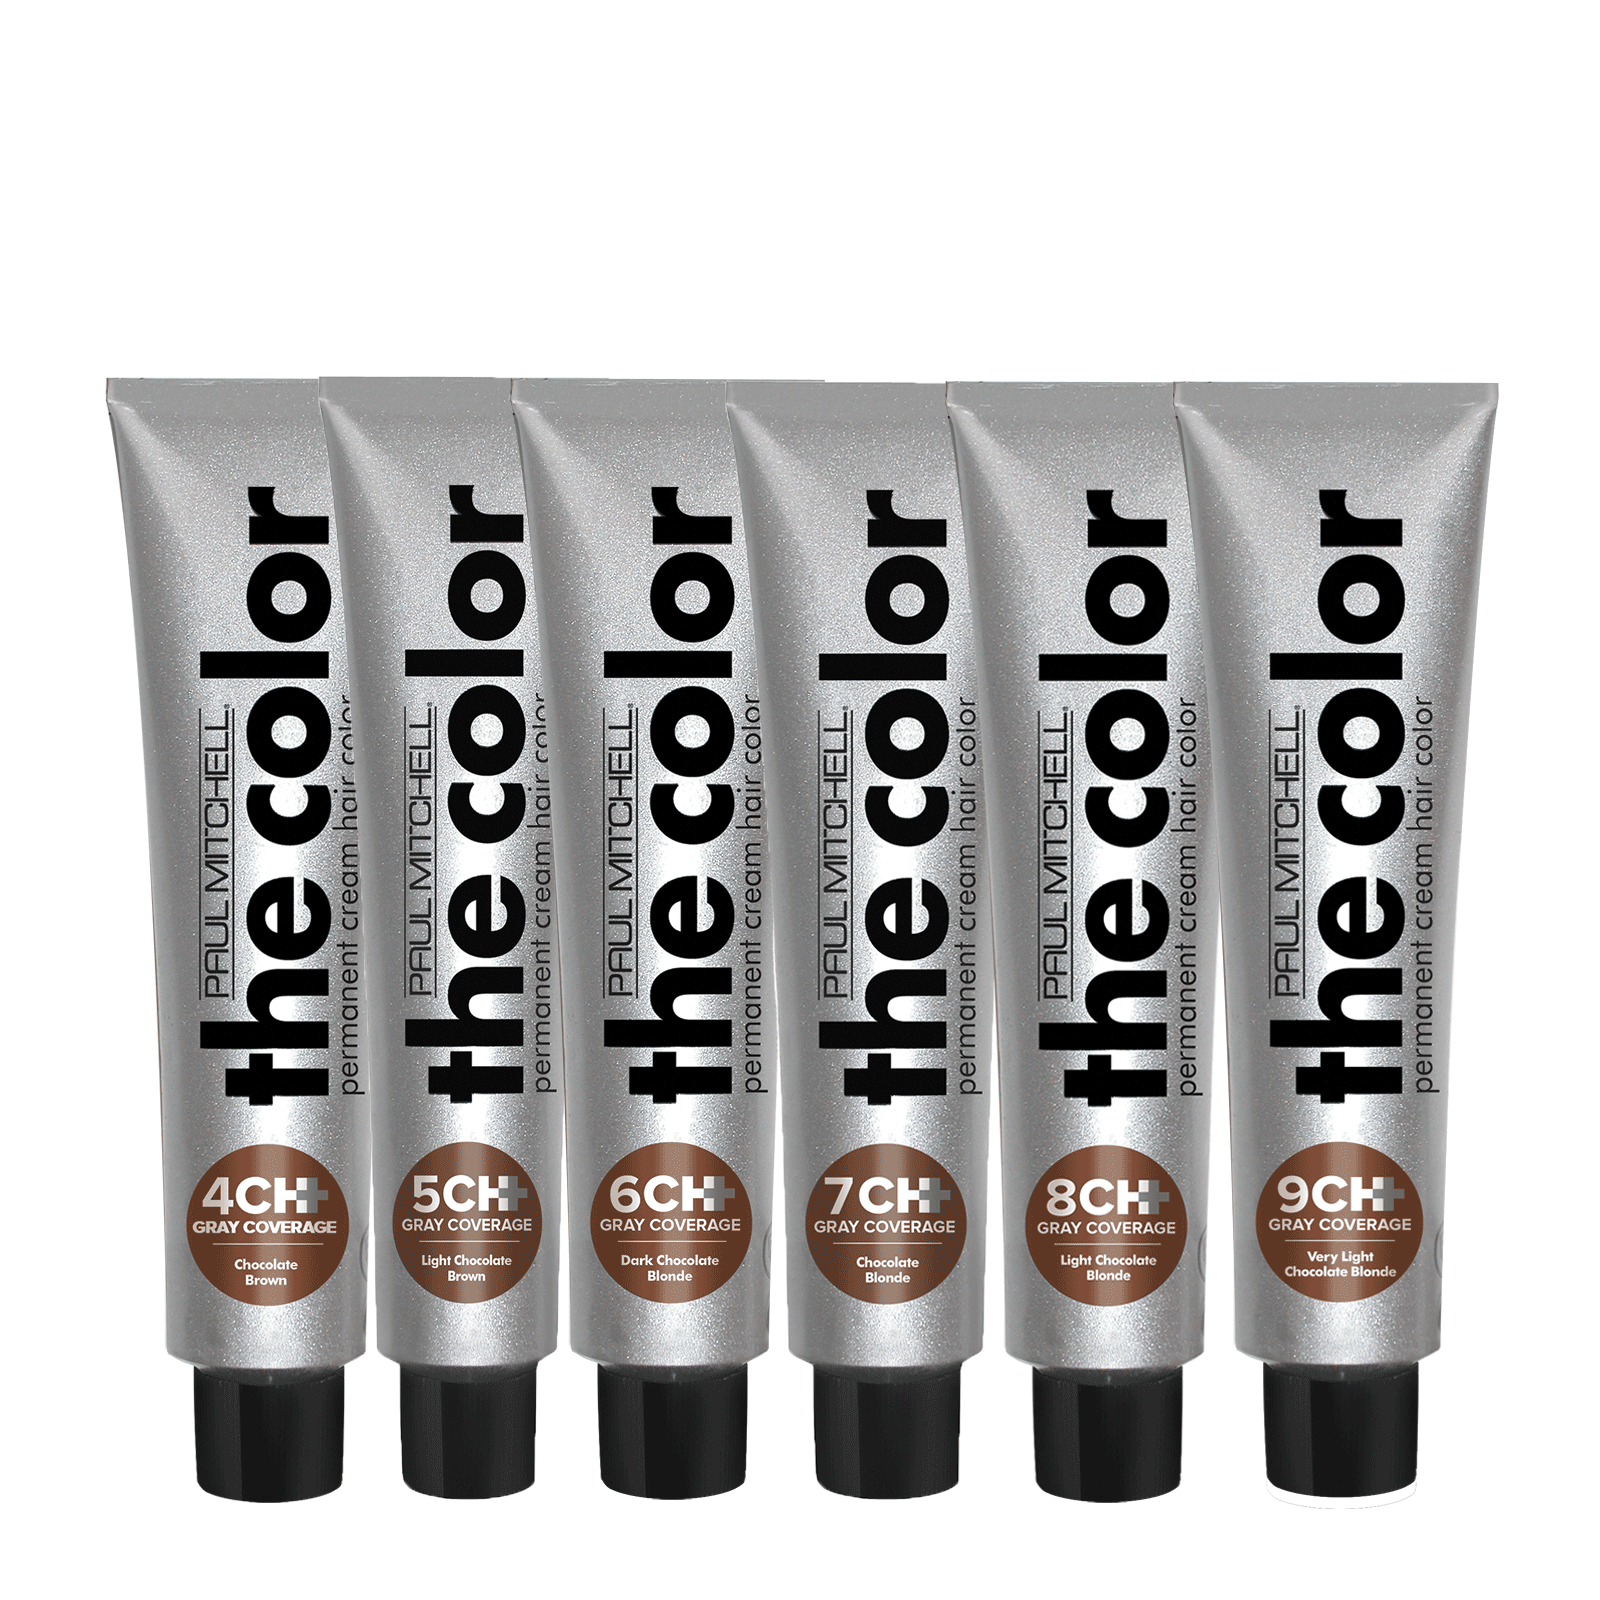 The Color Chocolate+ Series Shade Collection